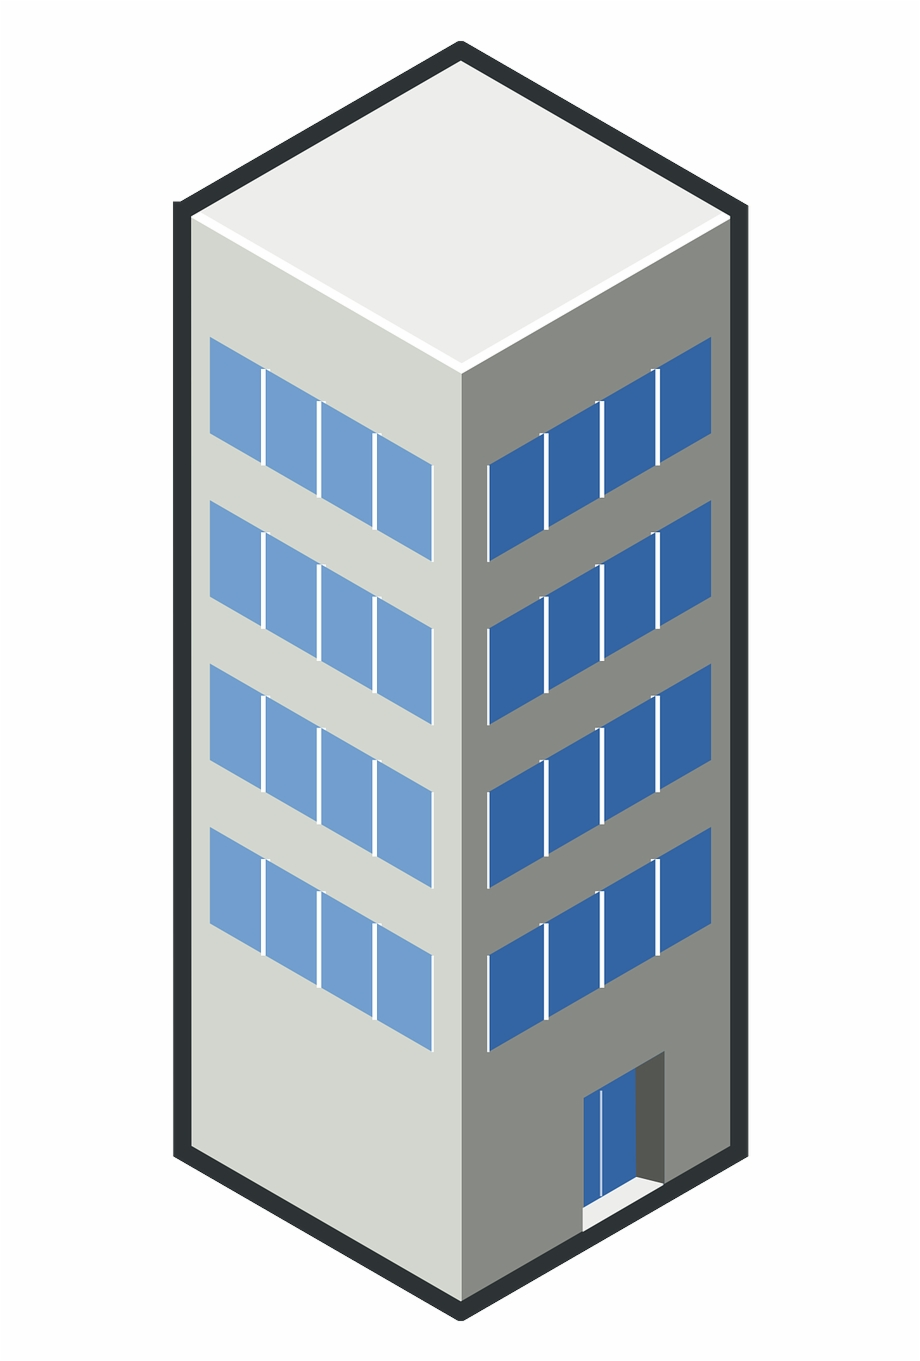 Gedung Png, Transparent Png Download For Free #5118133.